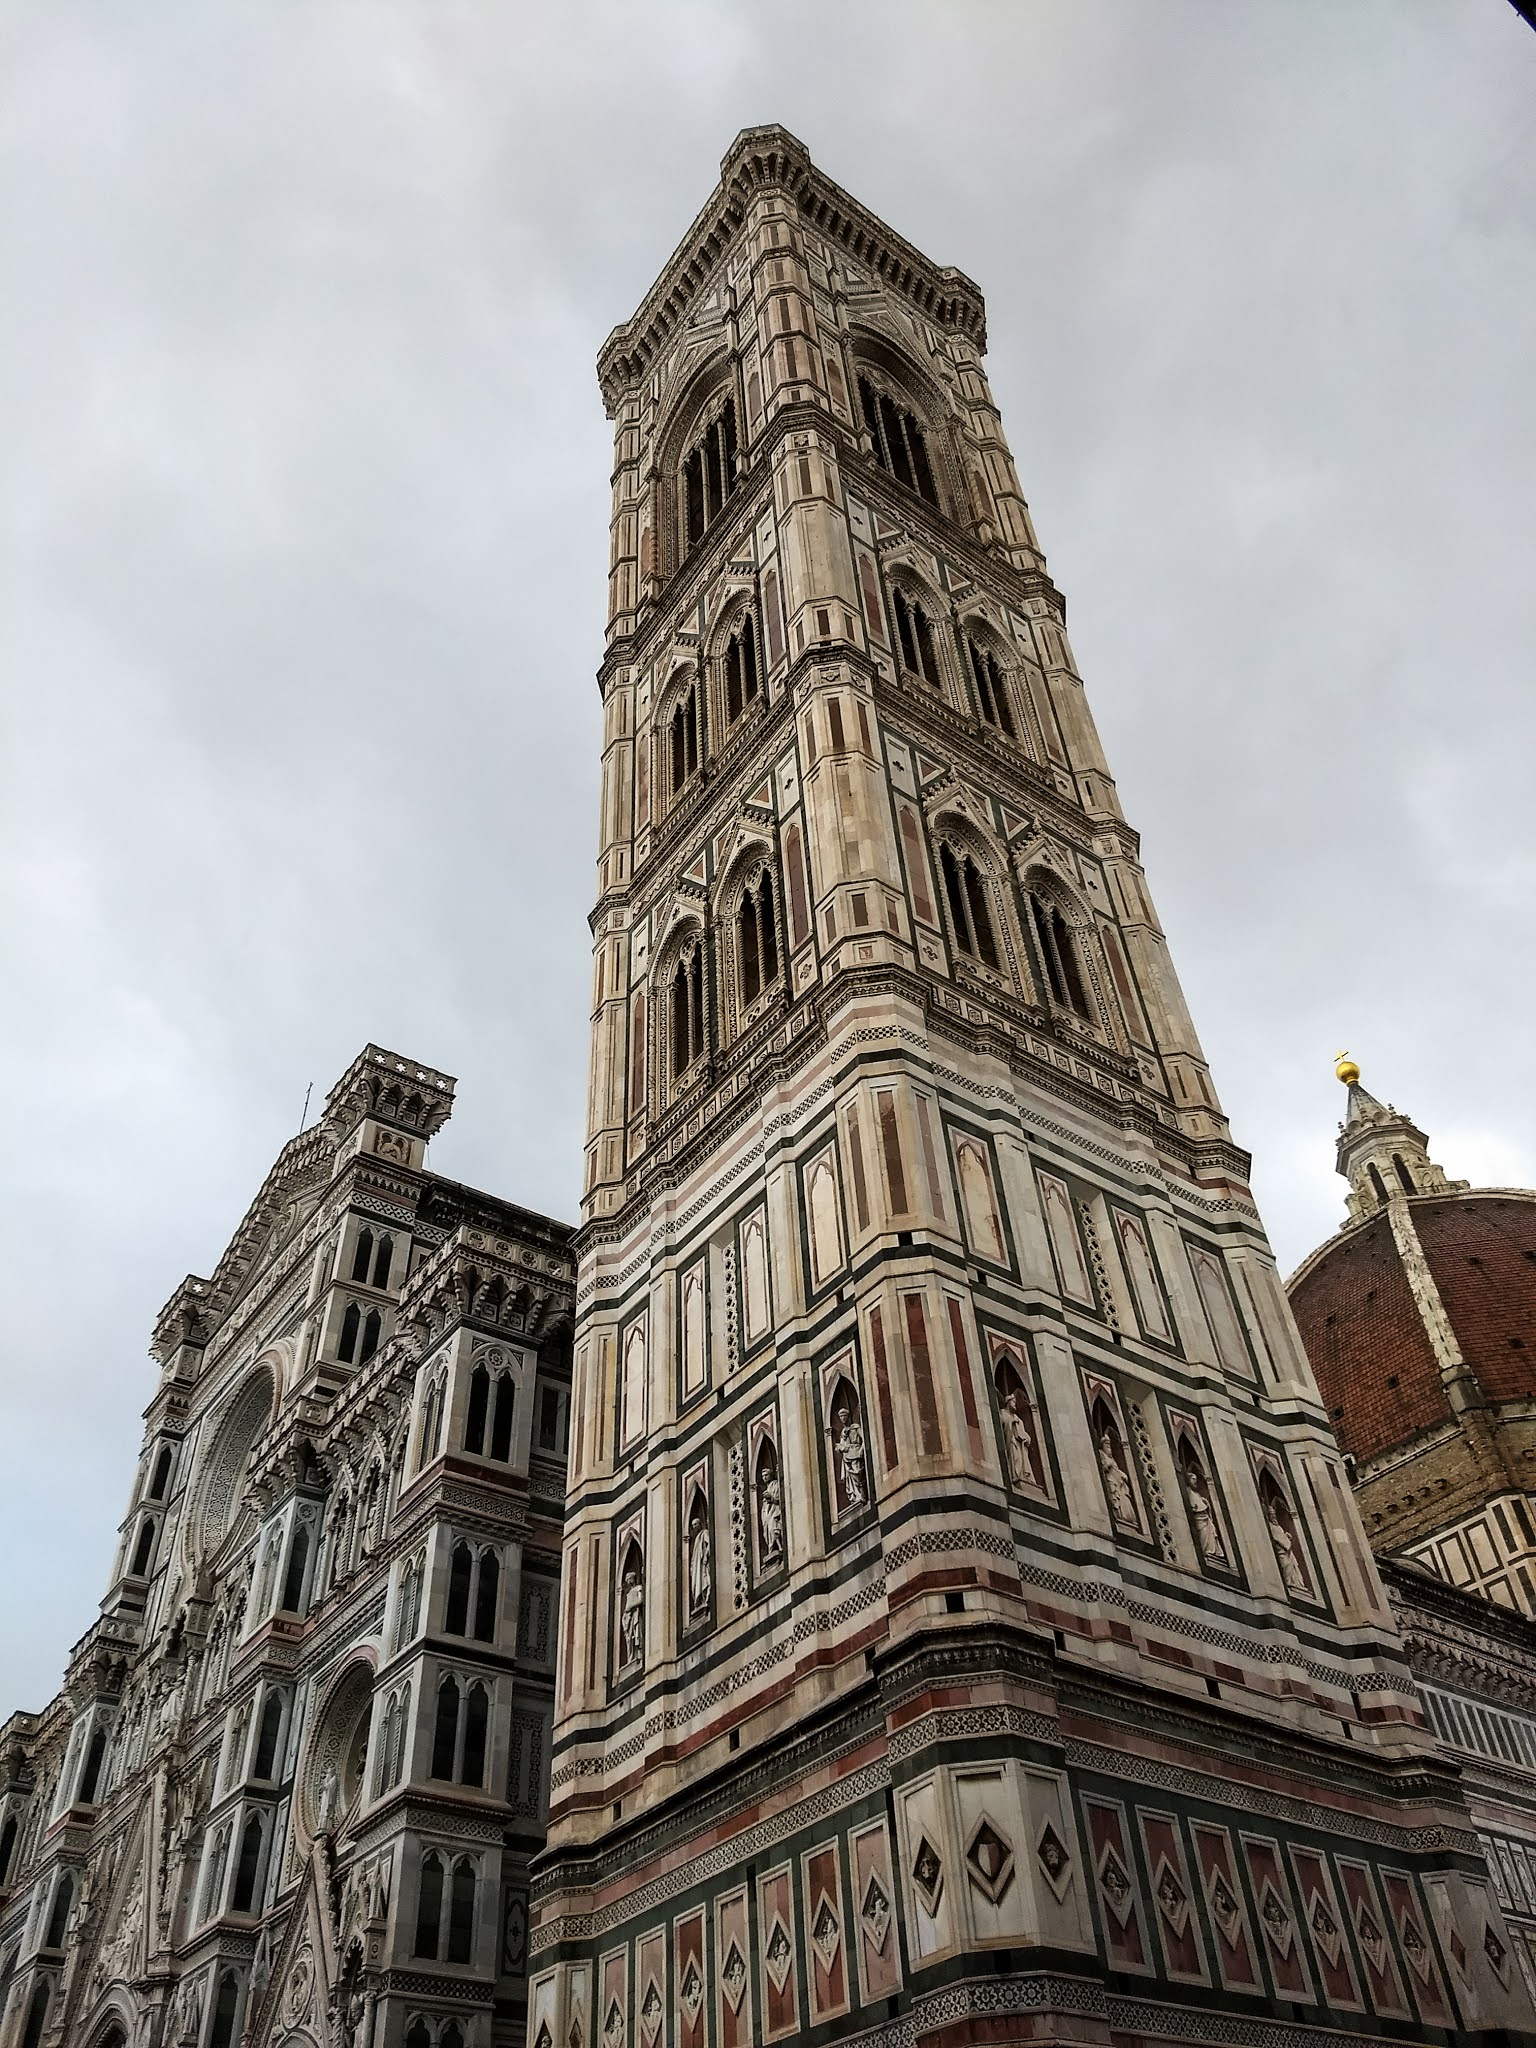 View of the Cathedral of Santa Maria del Fiore.